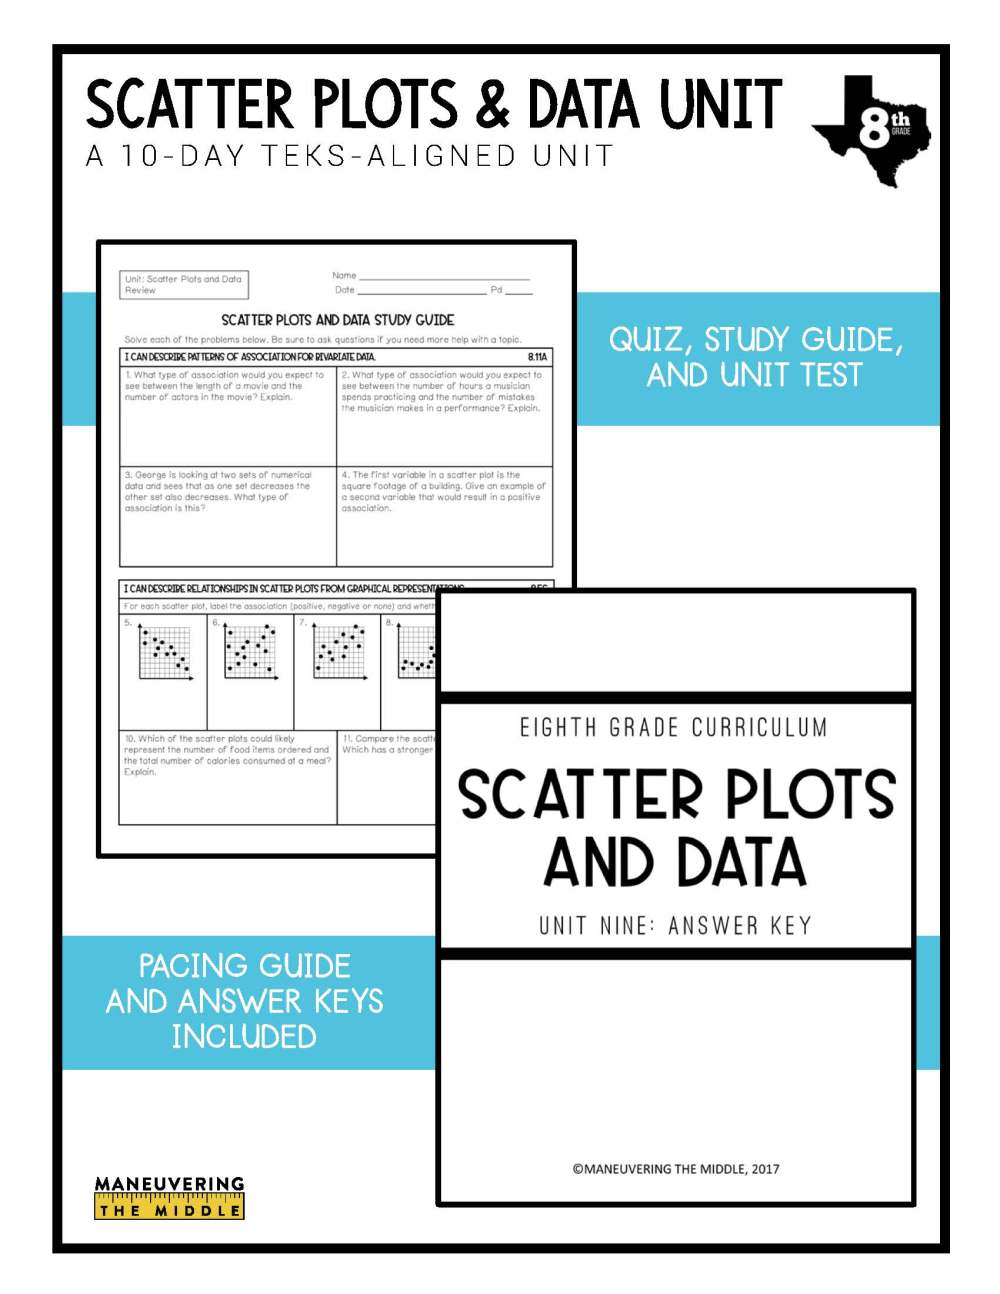 medium resolution of Scatter Plots and Data Unit 8th Grade TEKS - Maneuvering the Middle